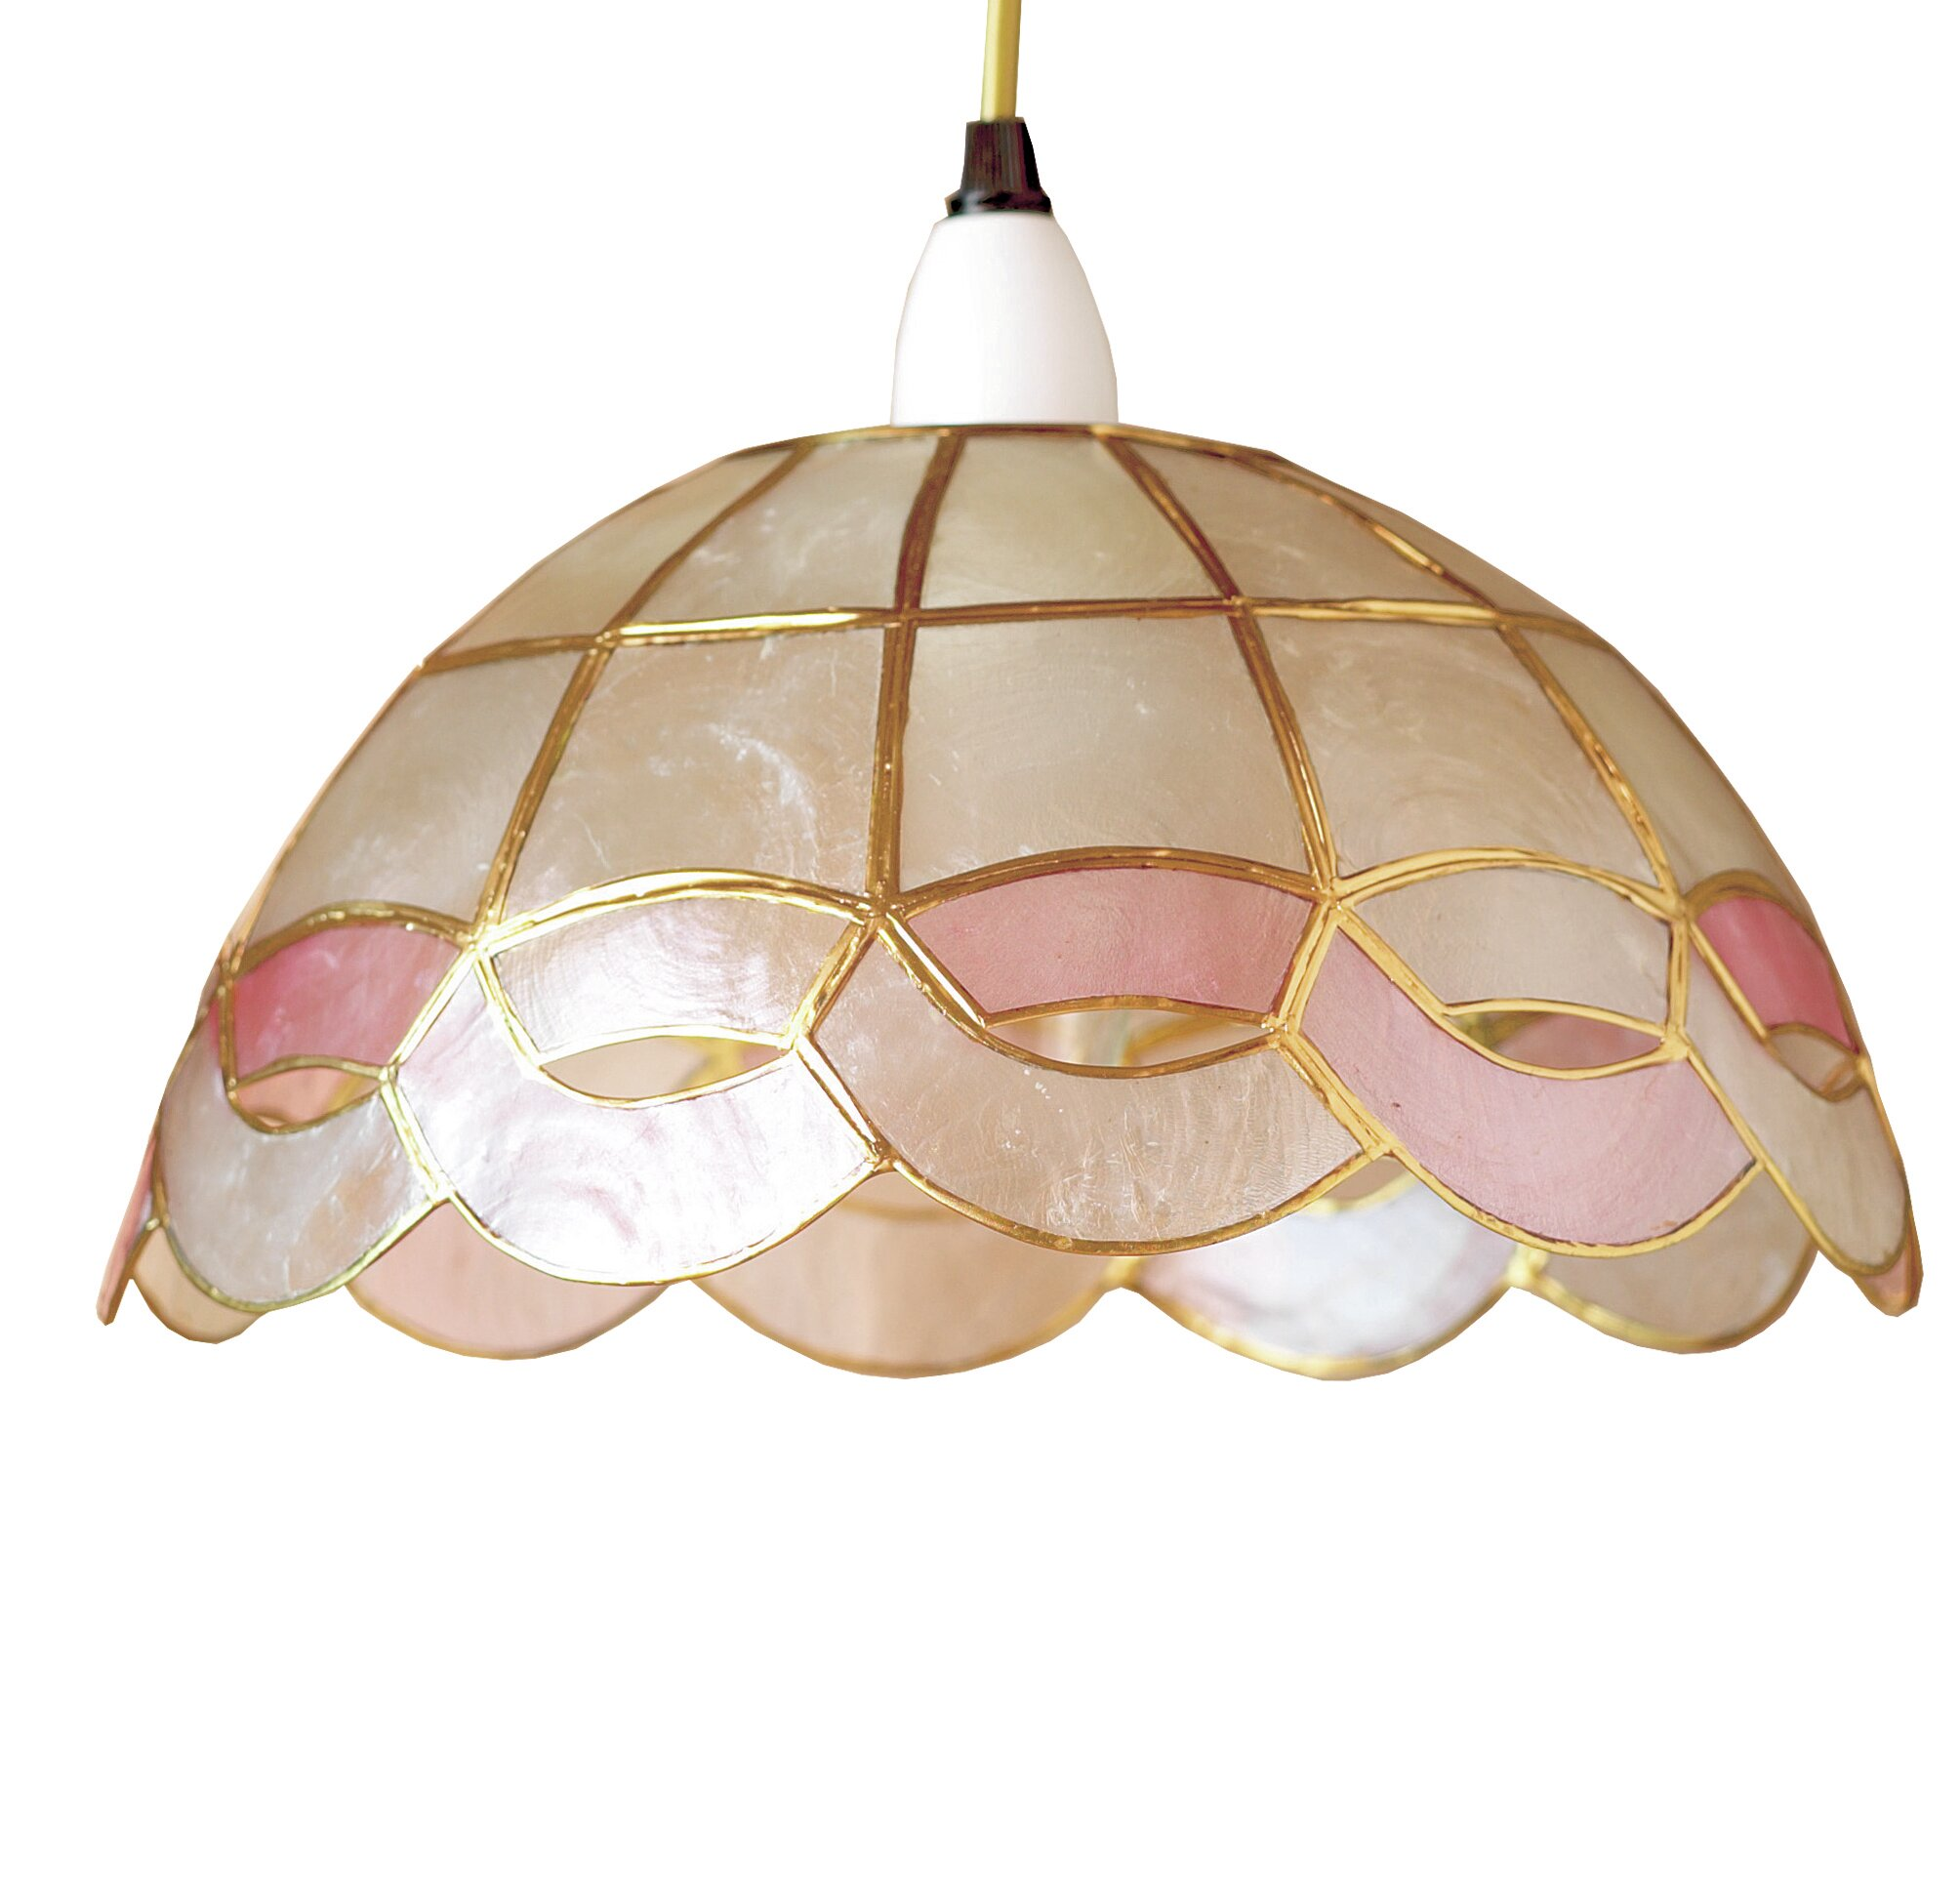 floors and wholesale lights abalone light plant decorations pendant oyster chandeliers shell fixture floor chain glass with s lighting macrame capiz chandelier small seashell lamp sea